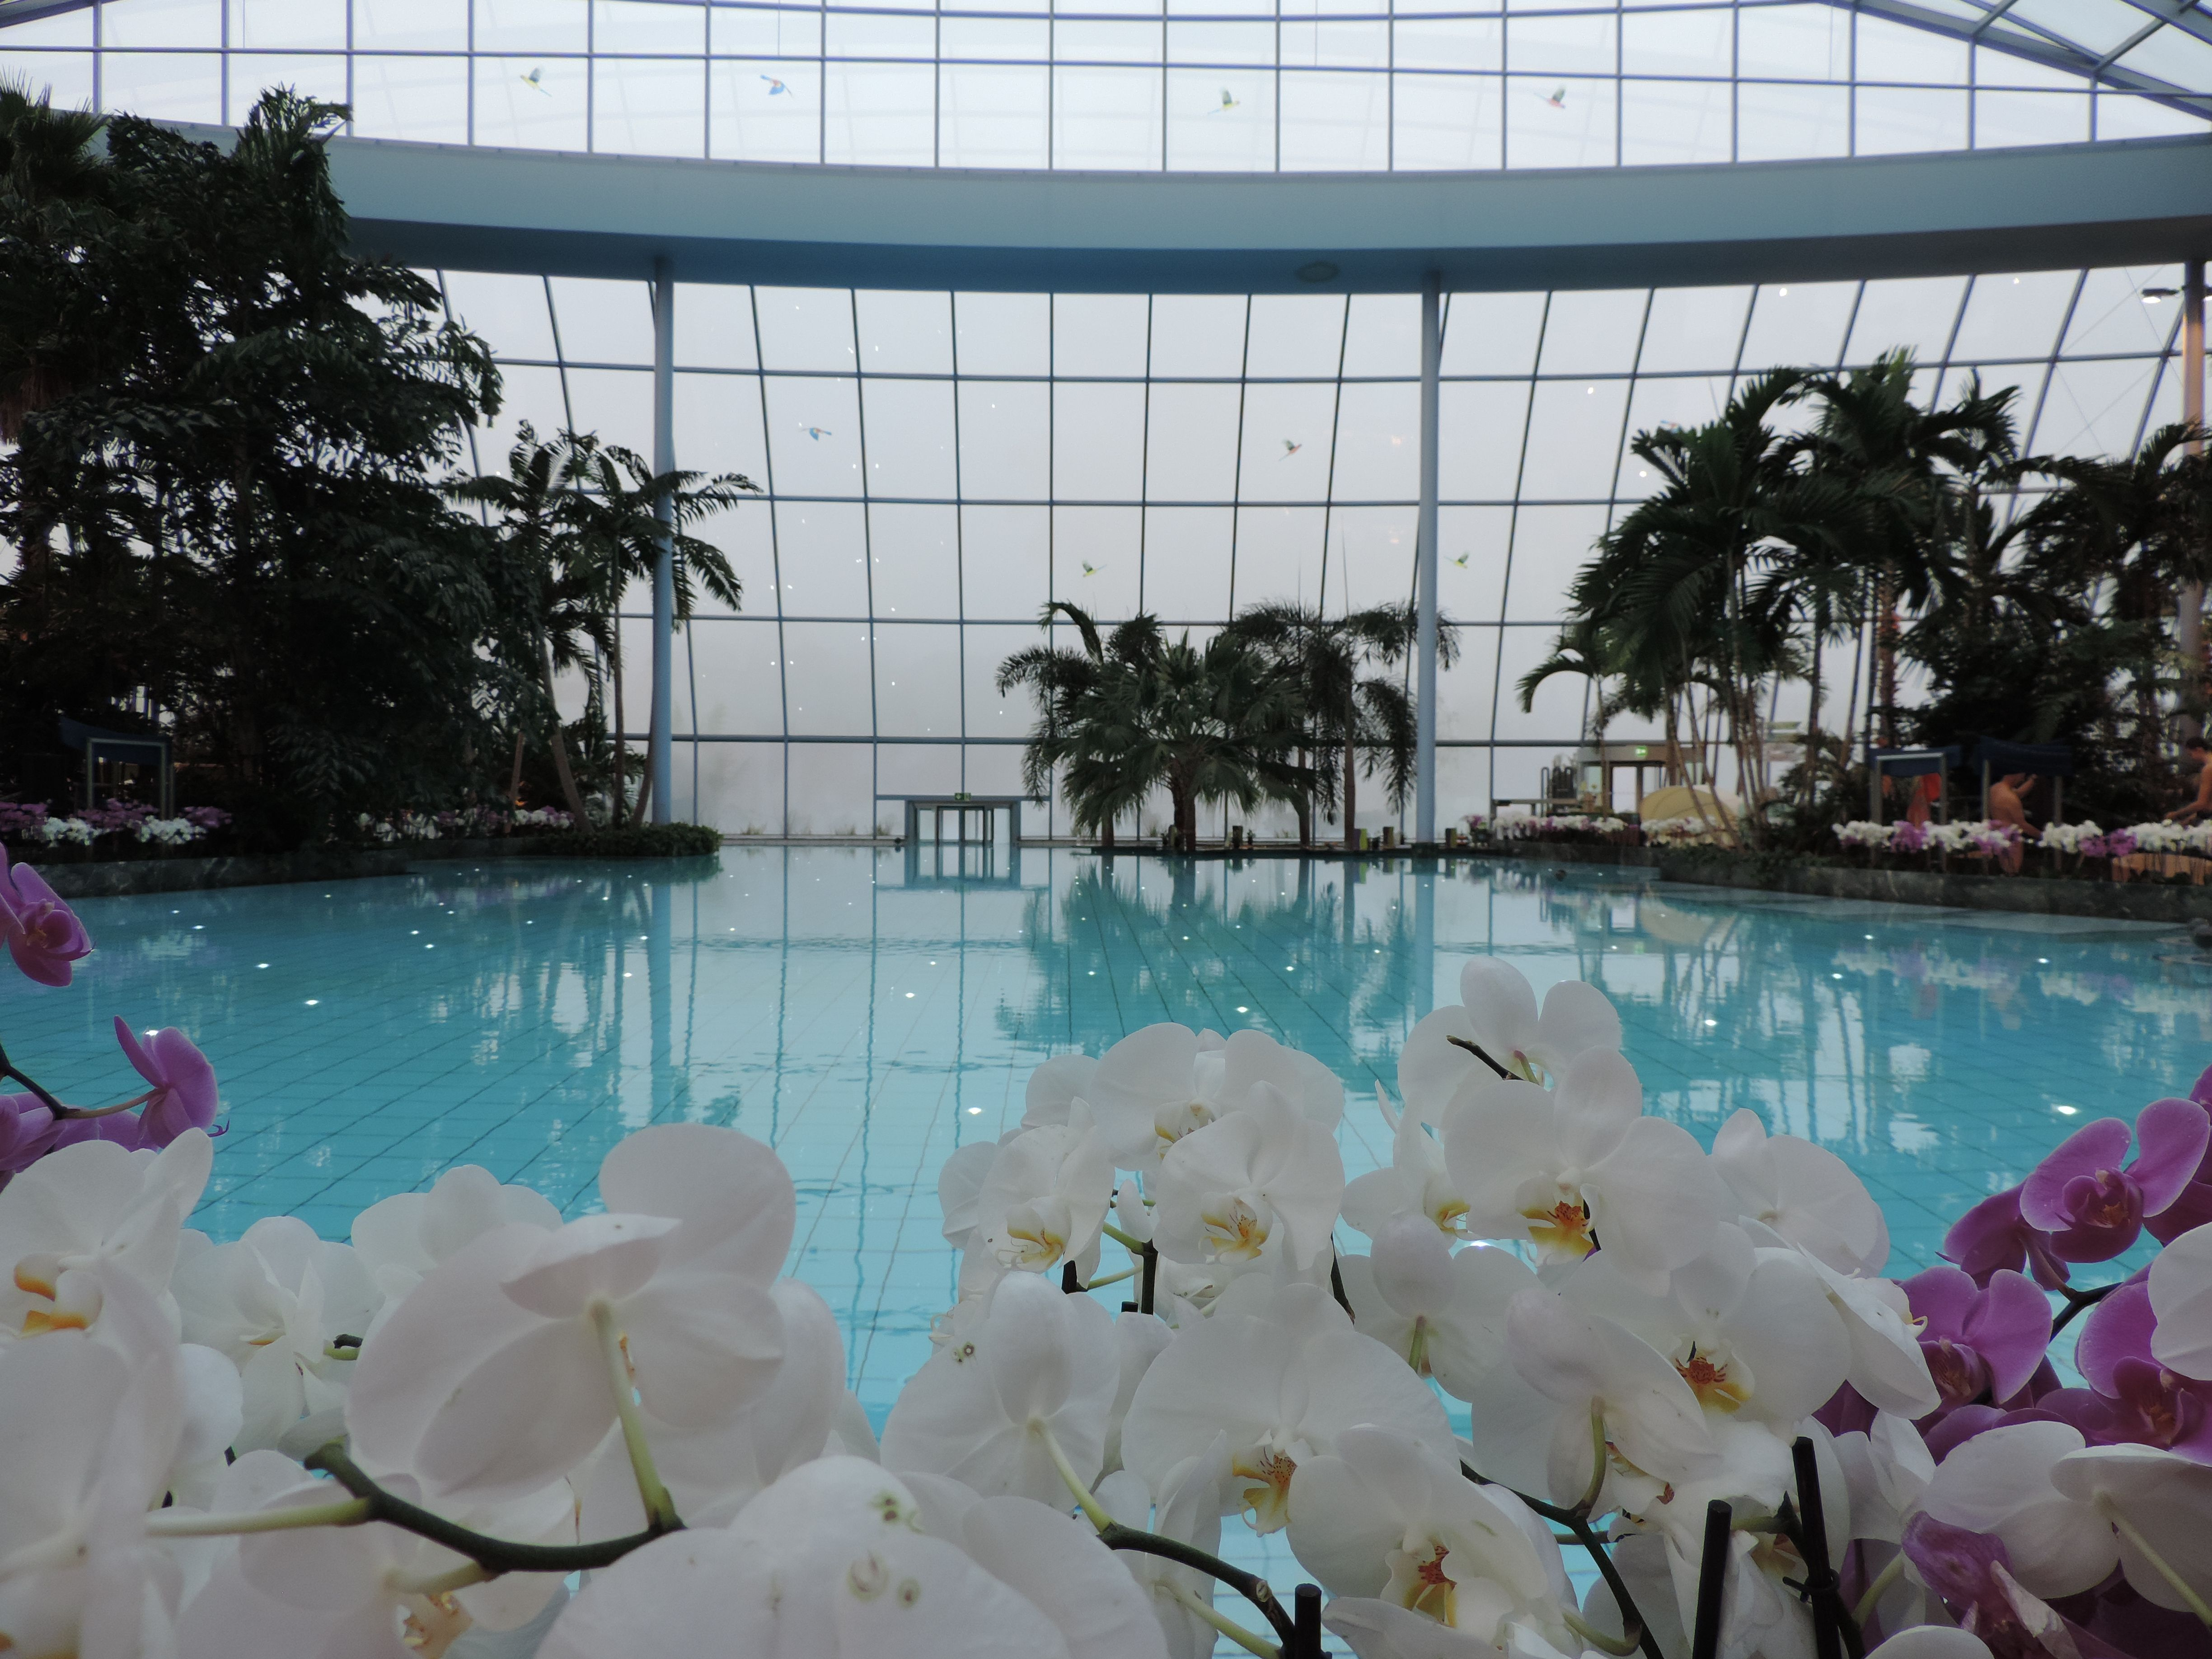 Misty mornings & bright orchids at Thermen und Badewelt Euskirchen.